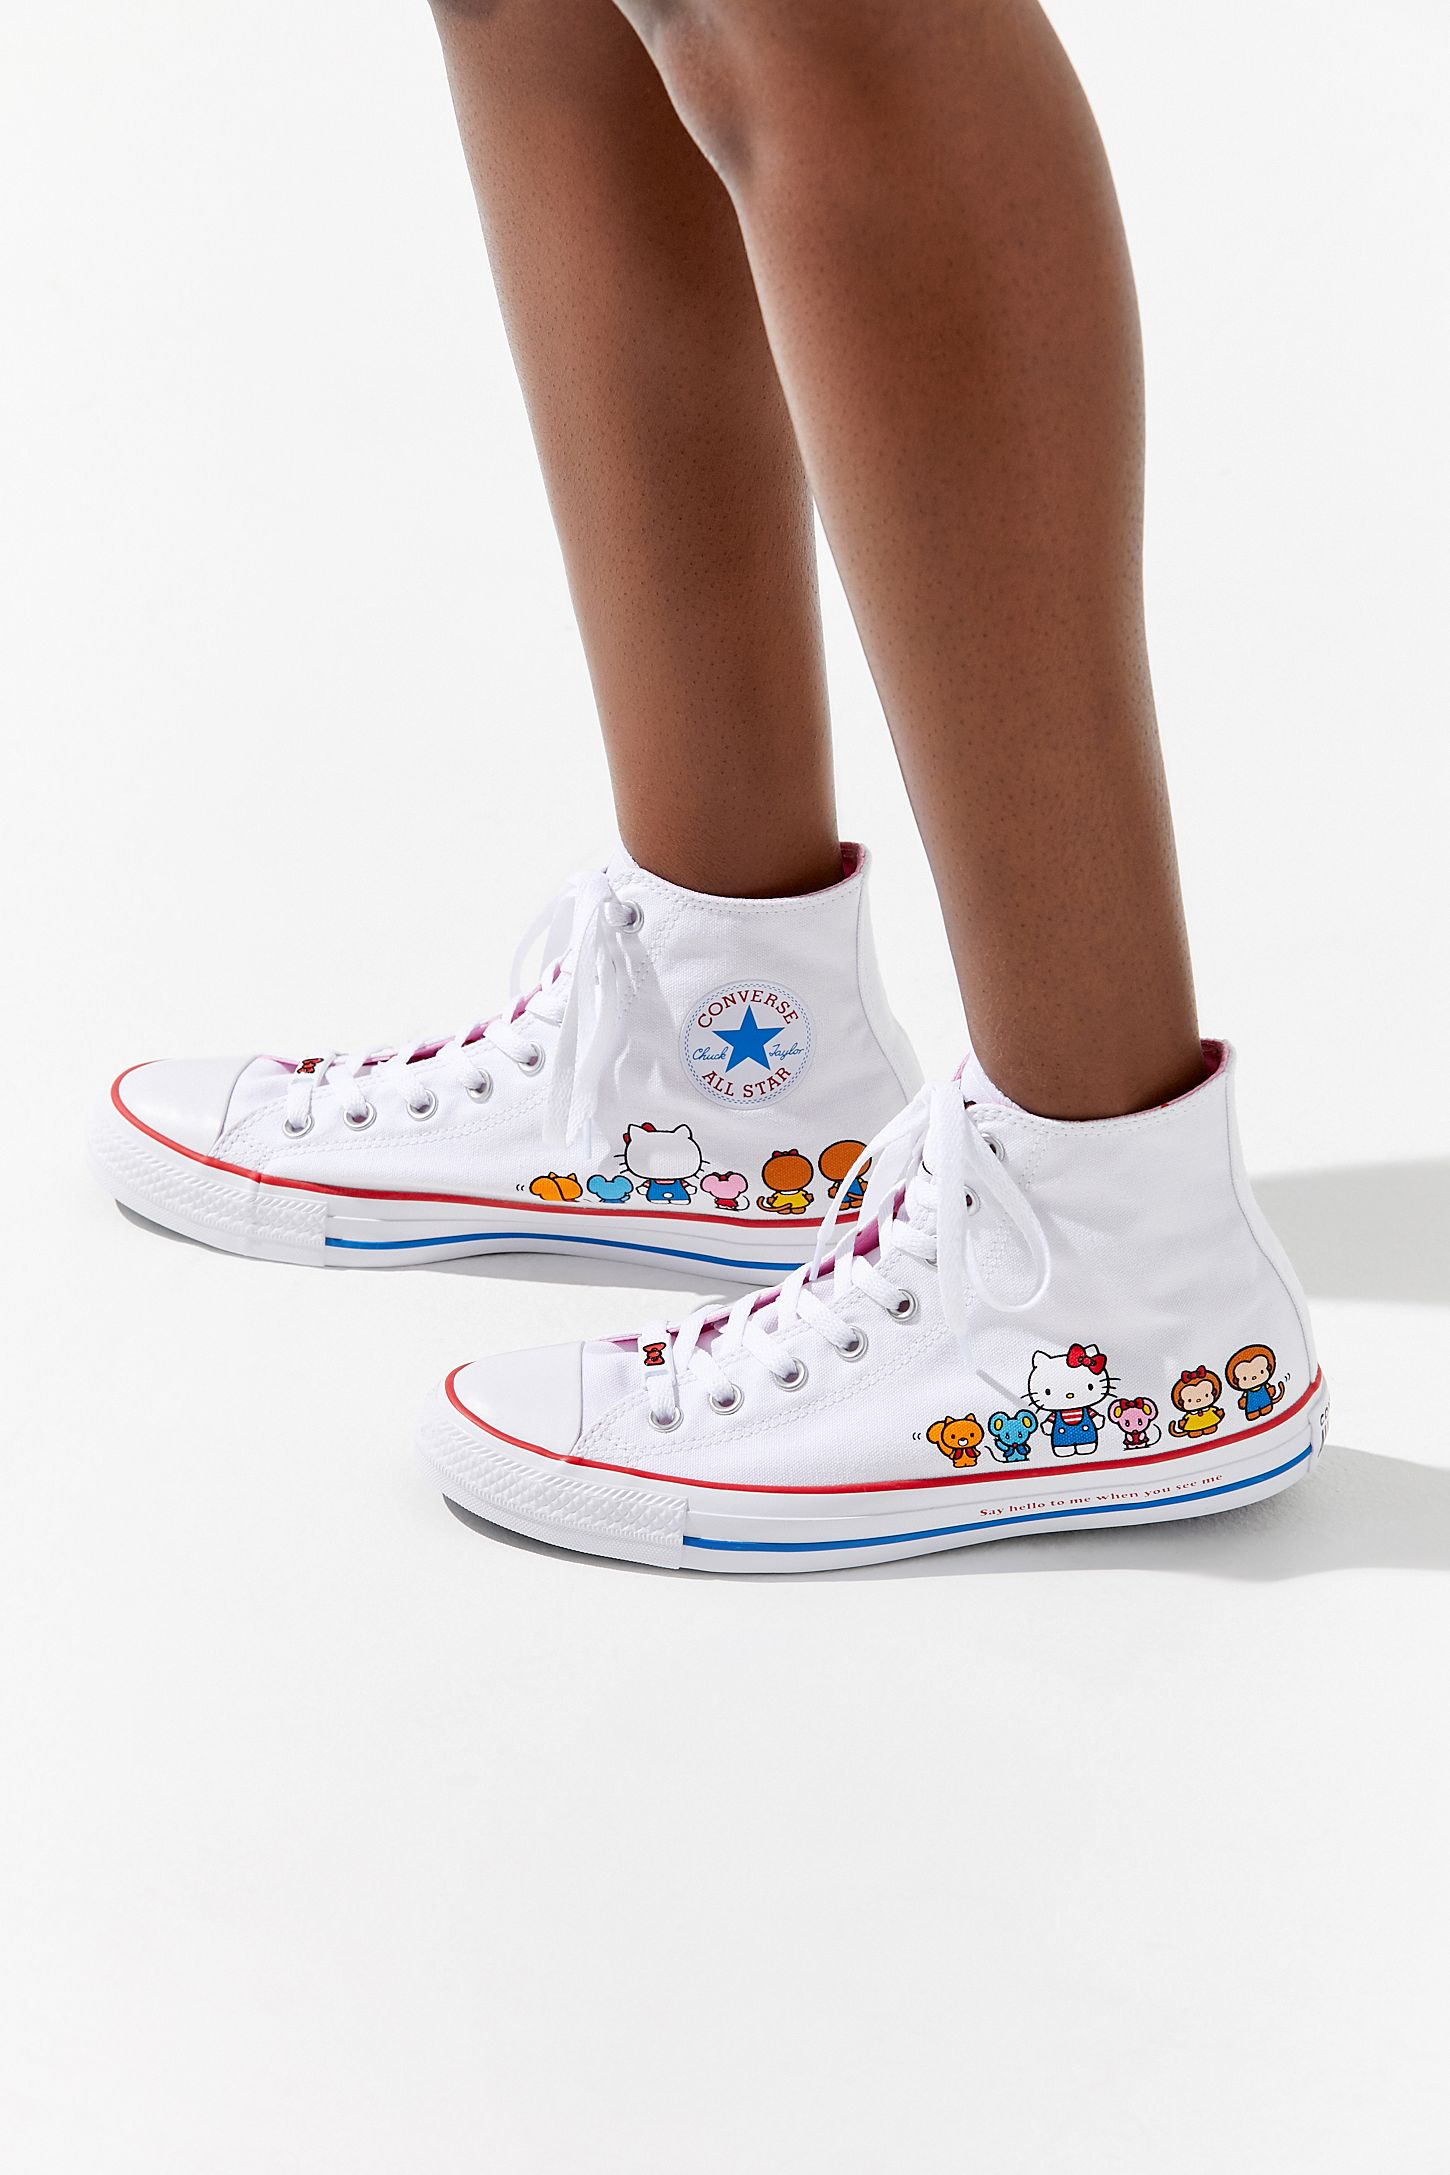 29e472b473055d Converse X Hello Kitty Chuck Taylor All Star High Top Sneaker. Tap image to  zoom. Hover to zoom. Double Tap to Zoom